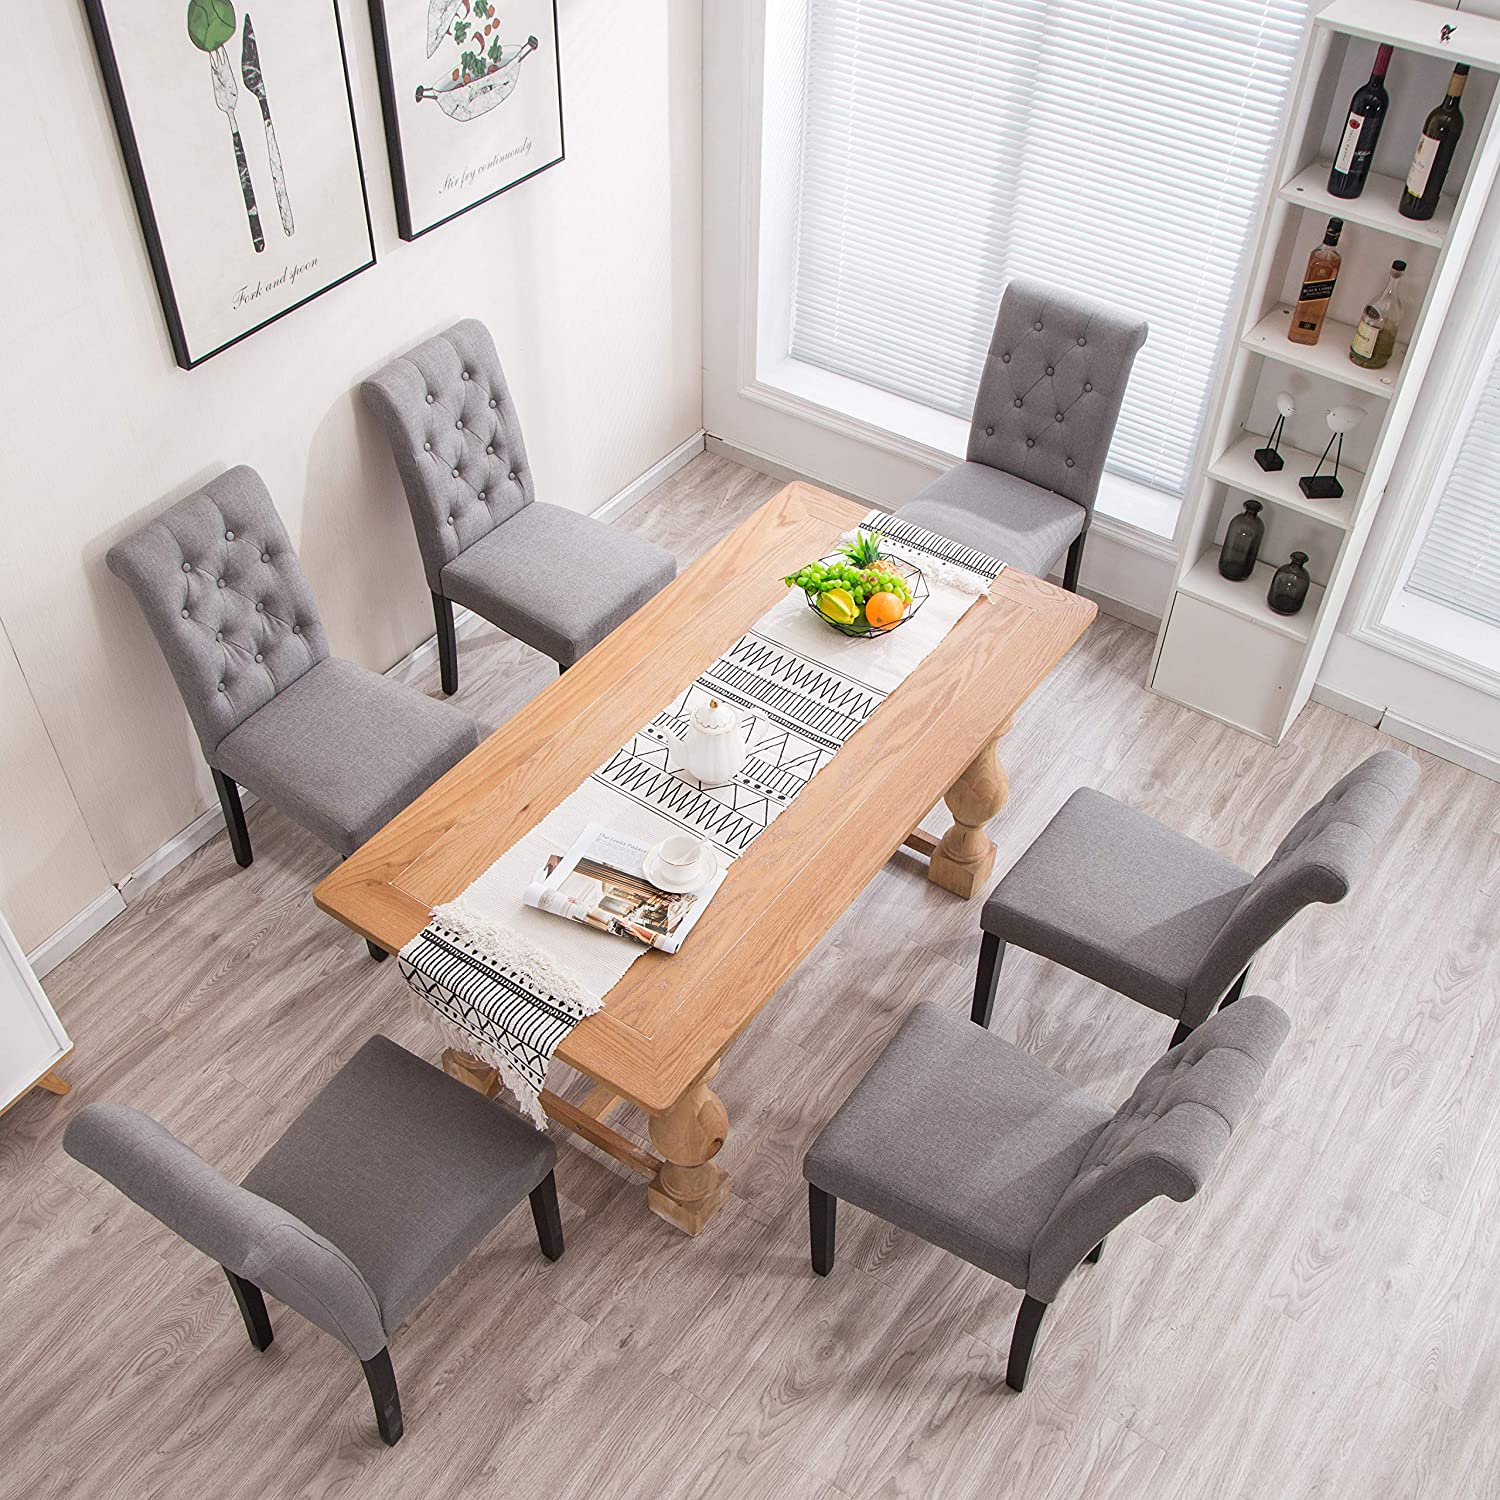 YEEFY Habit Solid Wood Tufted Parsons Dining Chair Set of 4 Gray